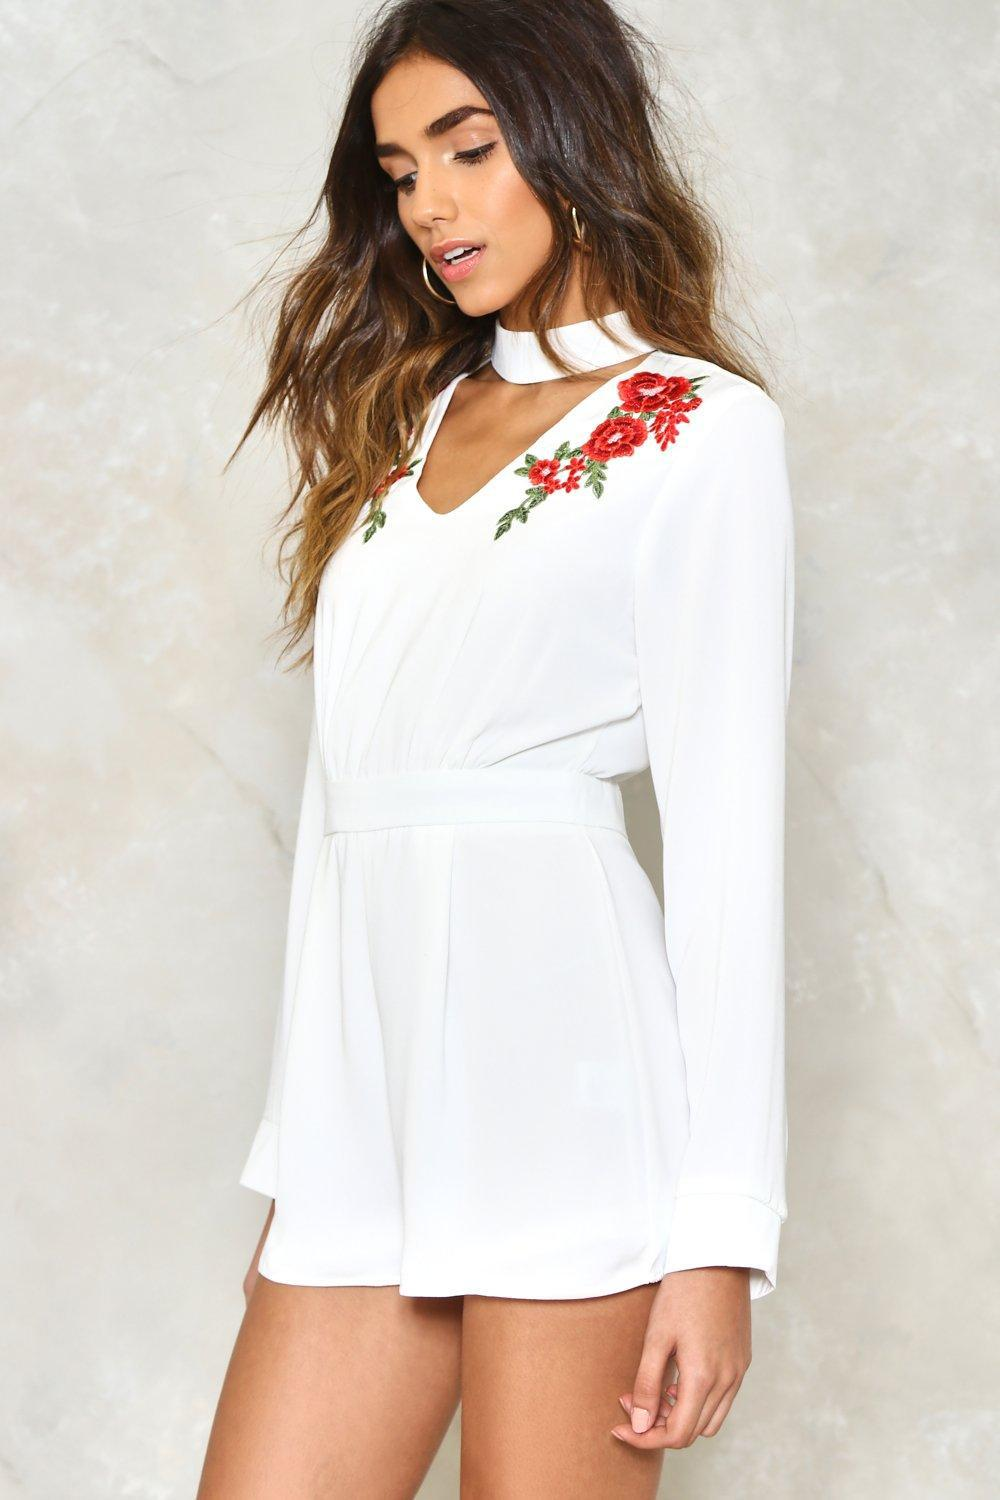 36fcabf687b Lyst - Nasty Gal Rose To The Occasion Embroidered Romper in White